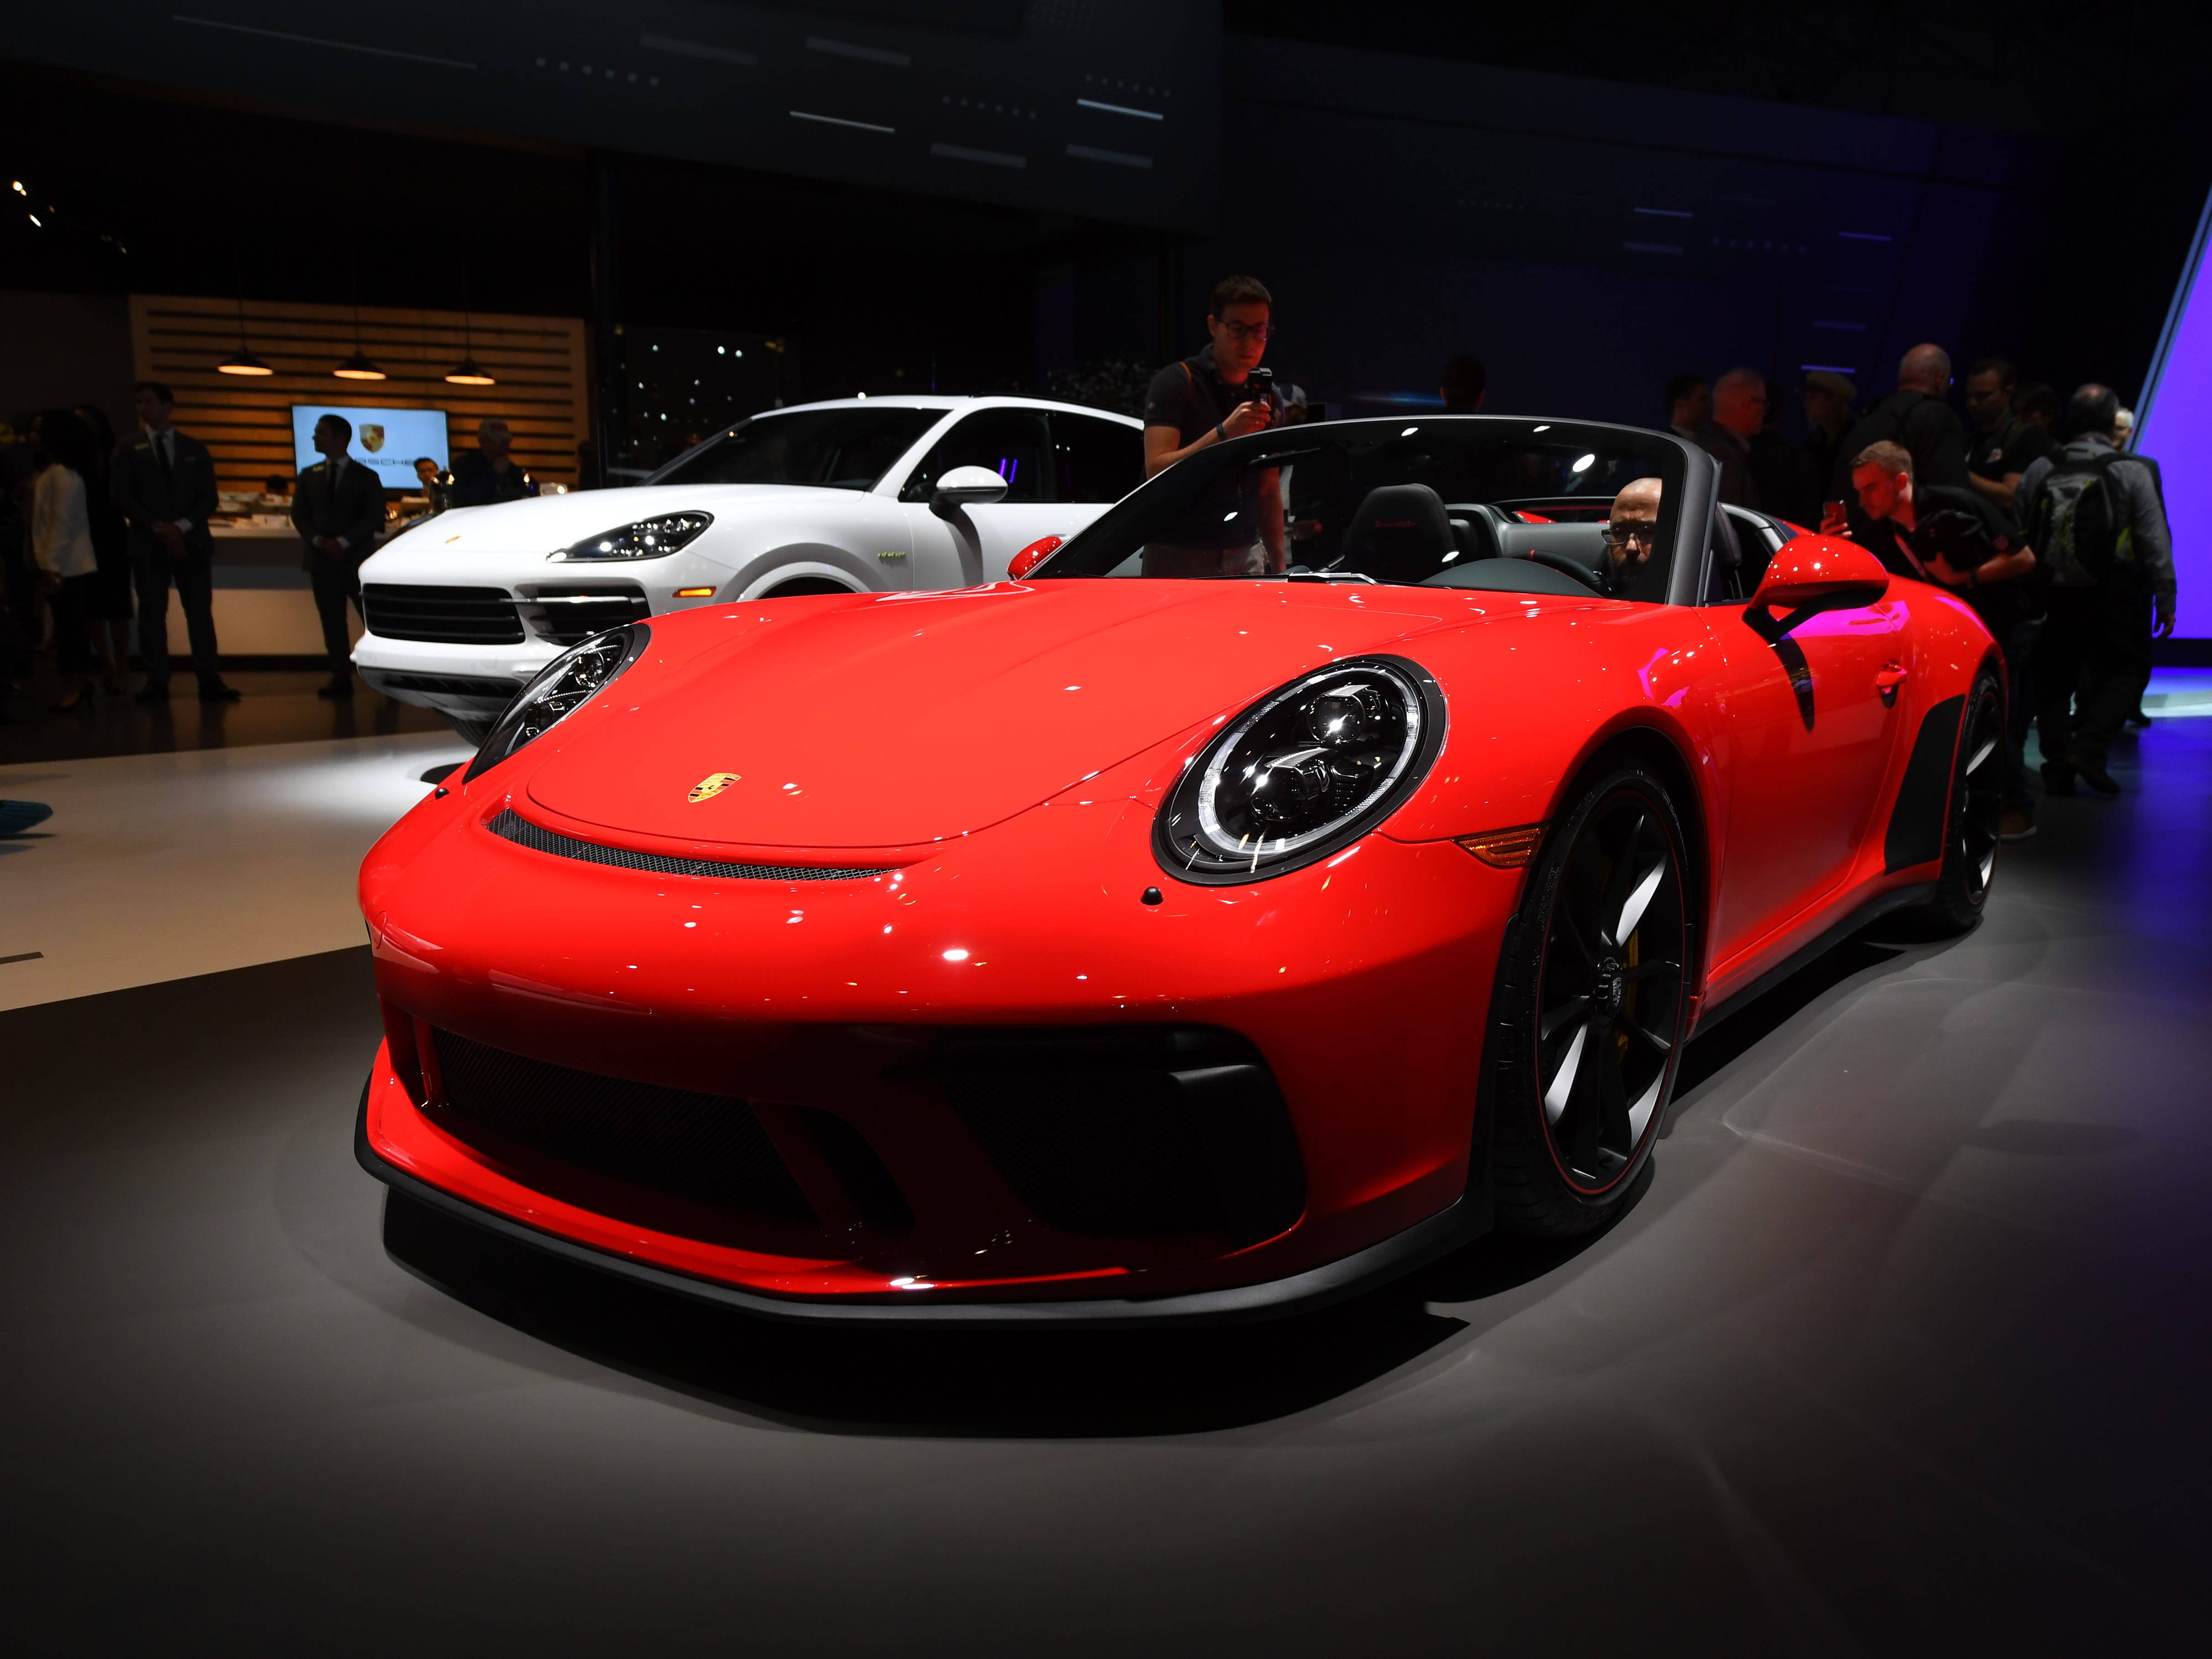 Porsche 911 Speedster on display at the New York Auto Show.